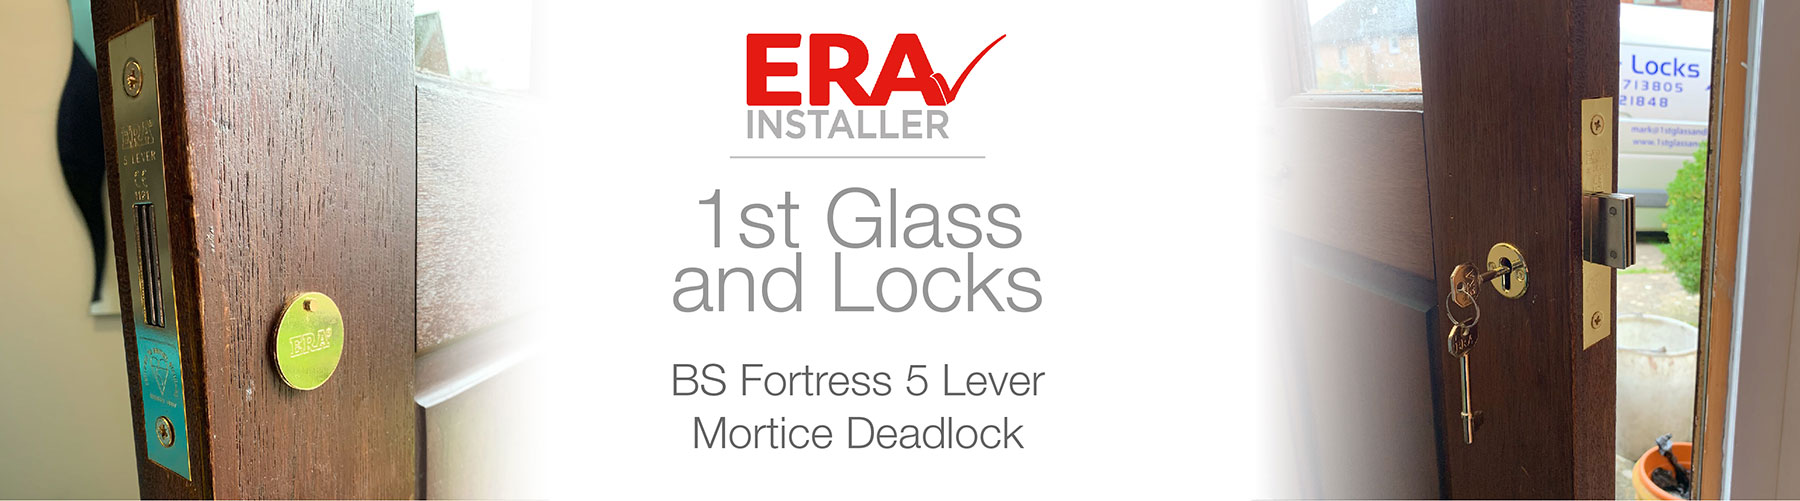 ERA Installer Testimonial 1st glass and locks